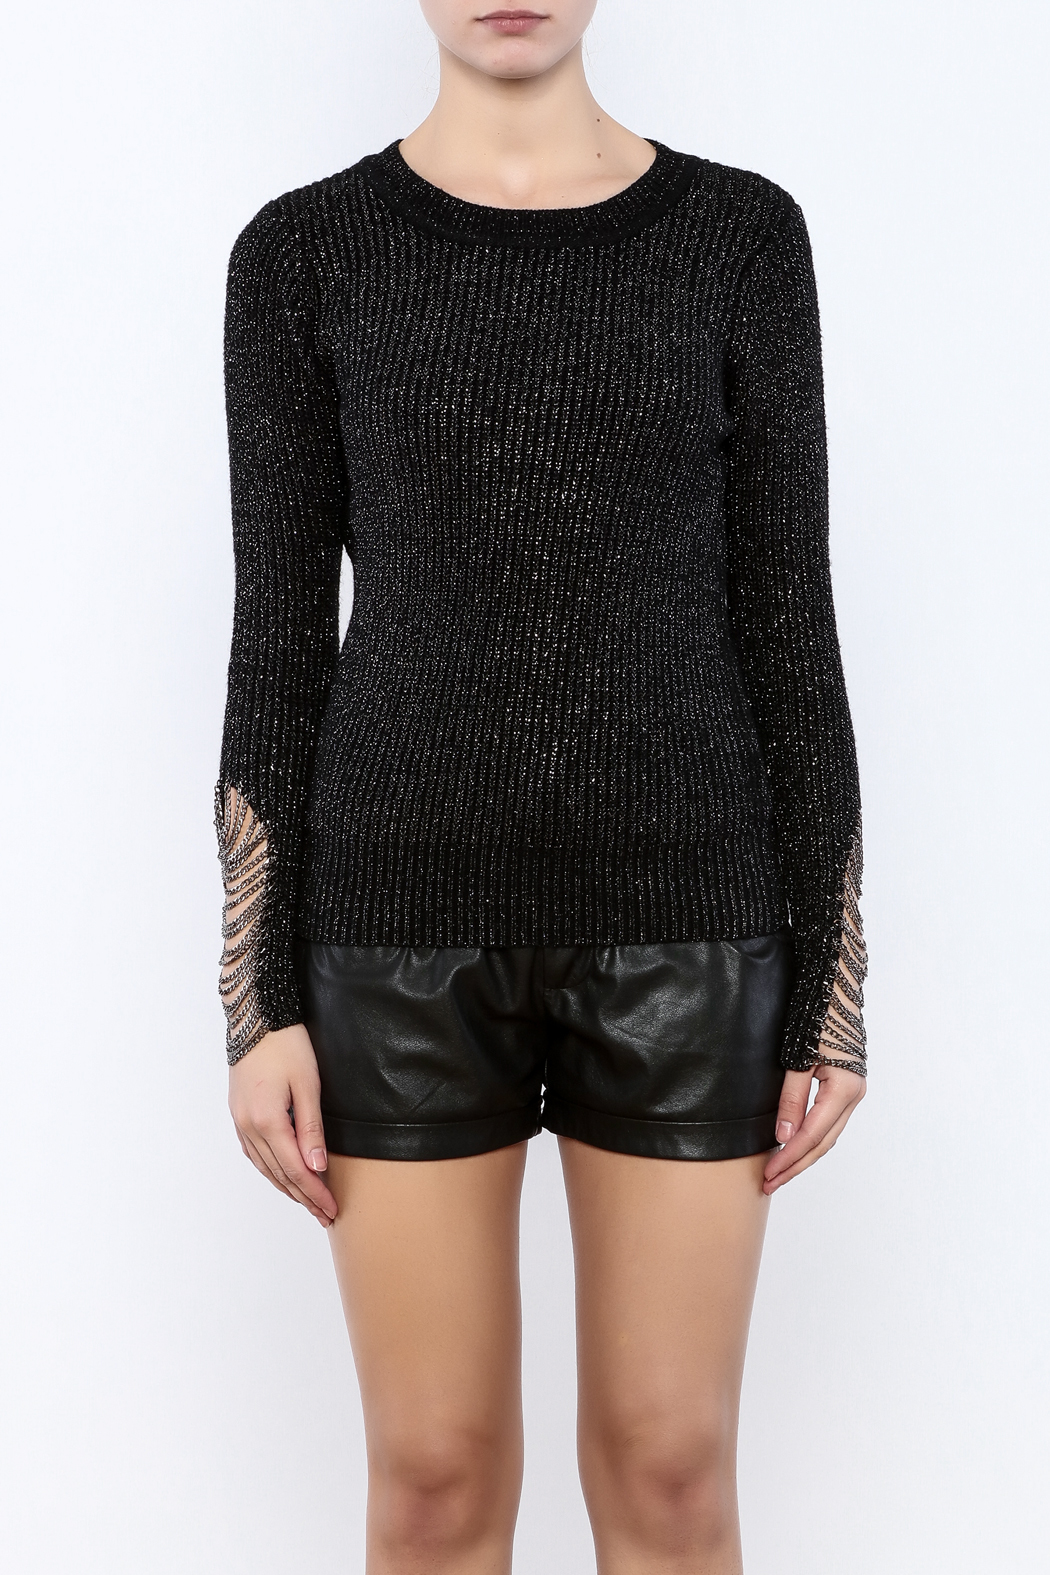 THINK CLOSET Chained Up Sweater - Side Cropped Image